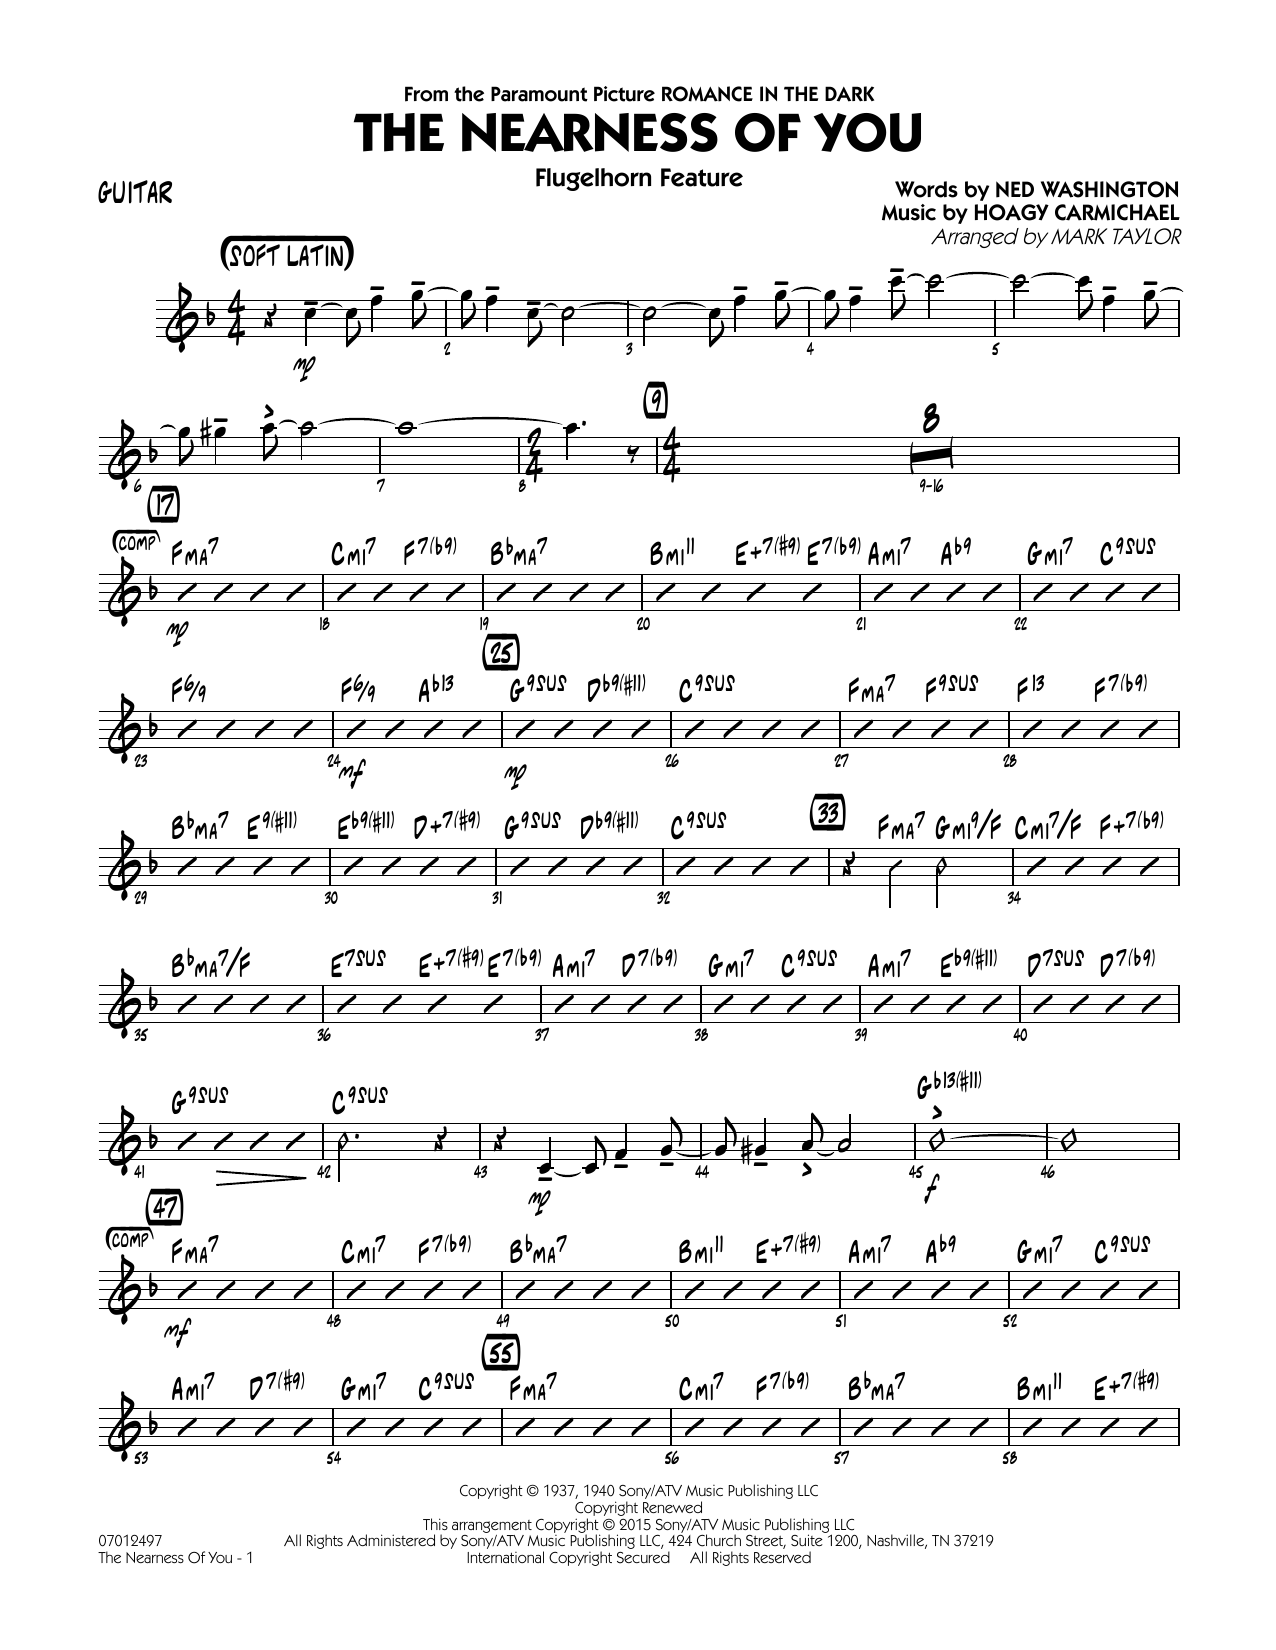 Mark Taylor The Nearness of You (Flugelhorn Feature) - Guitar sheet music notes and chords. Download Printable PDF.